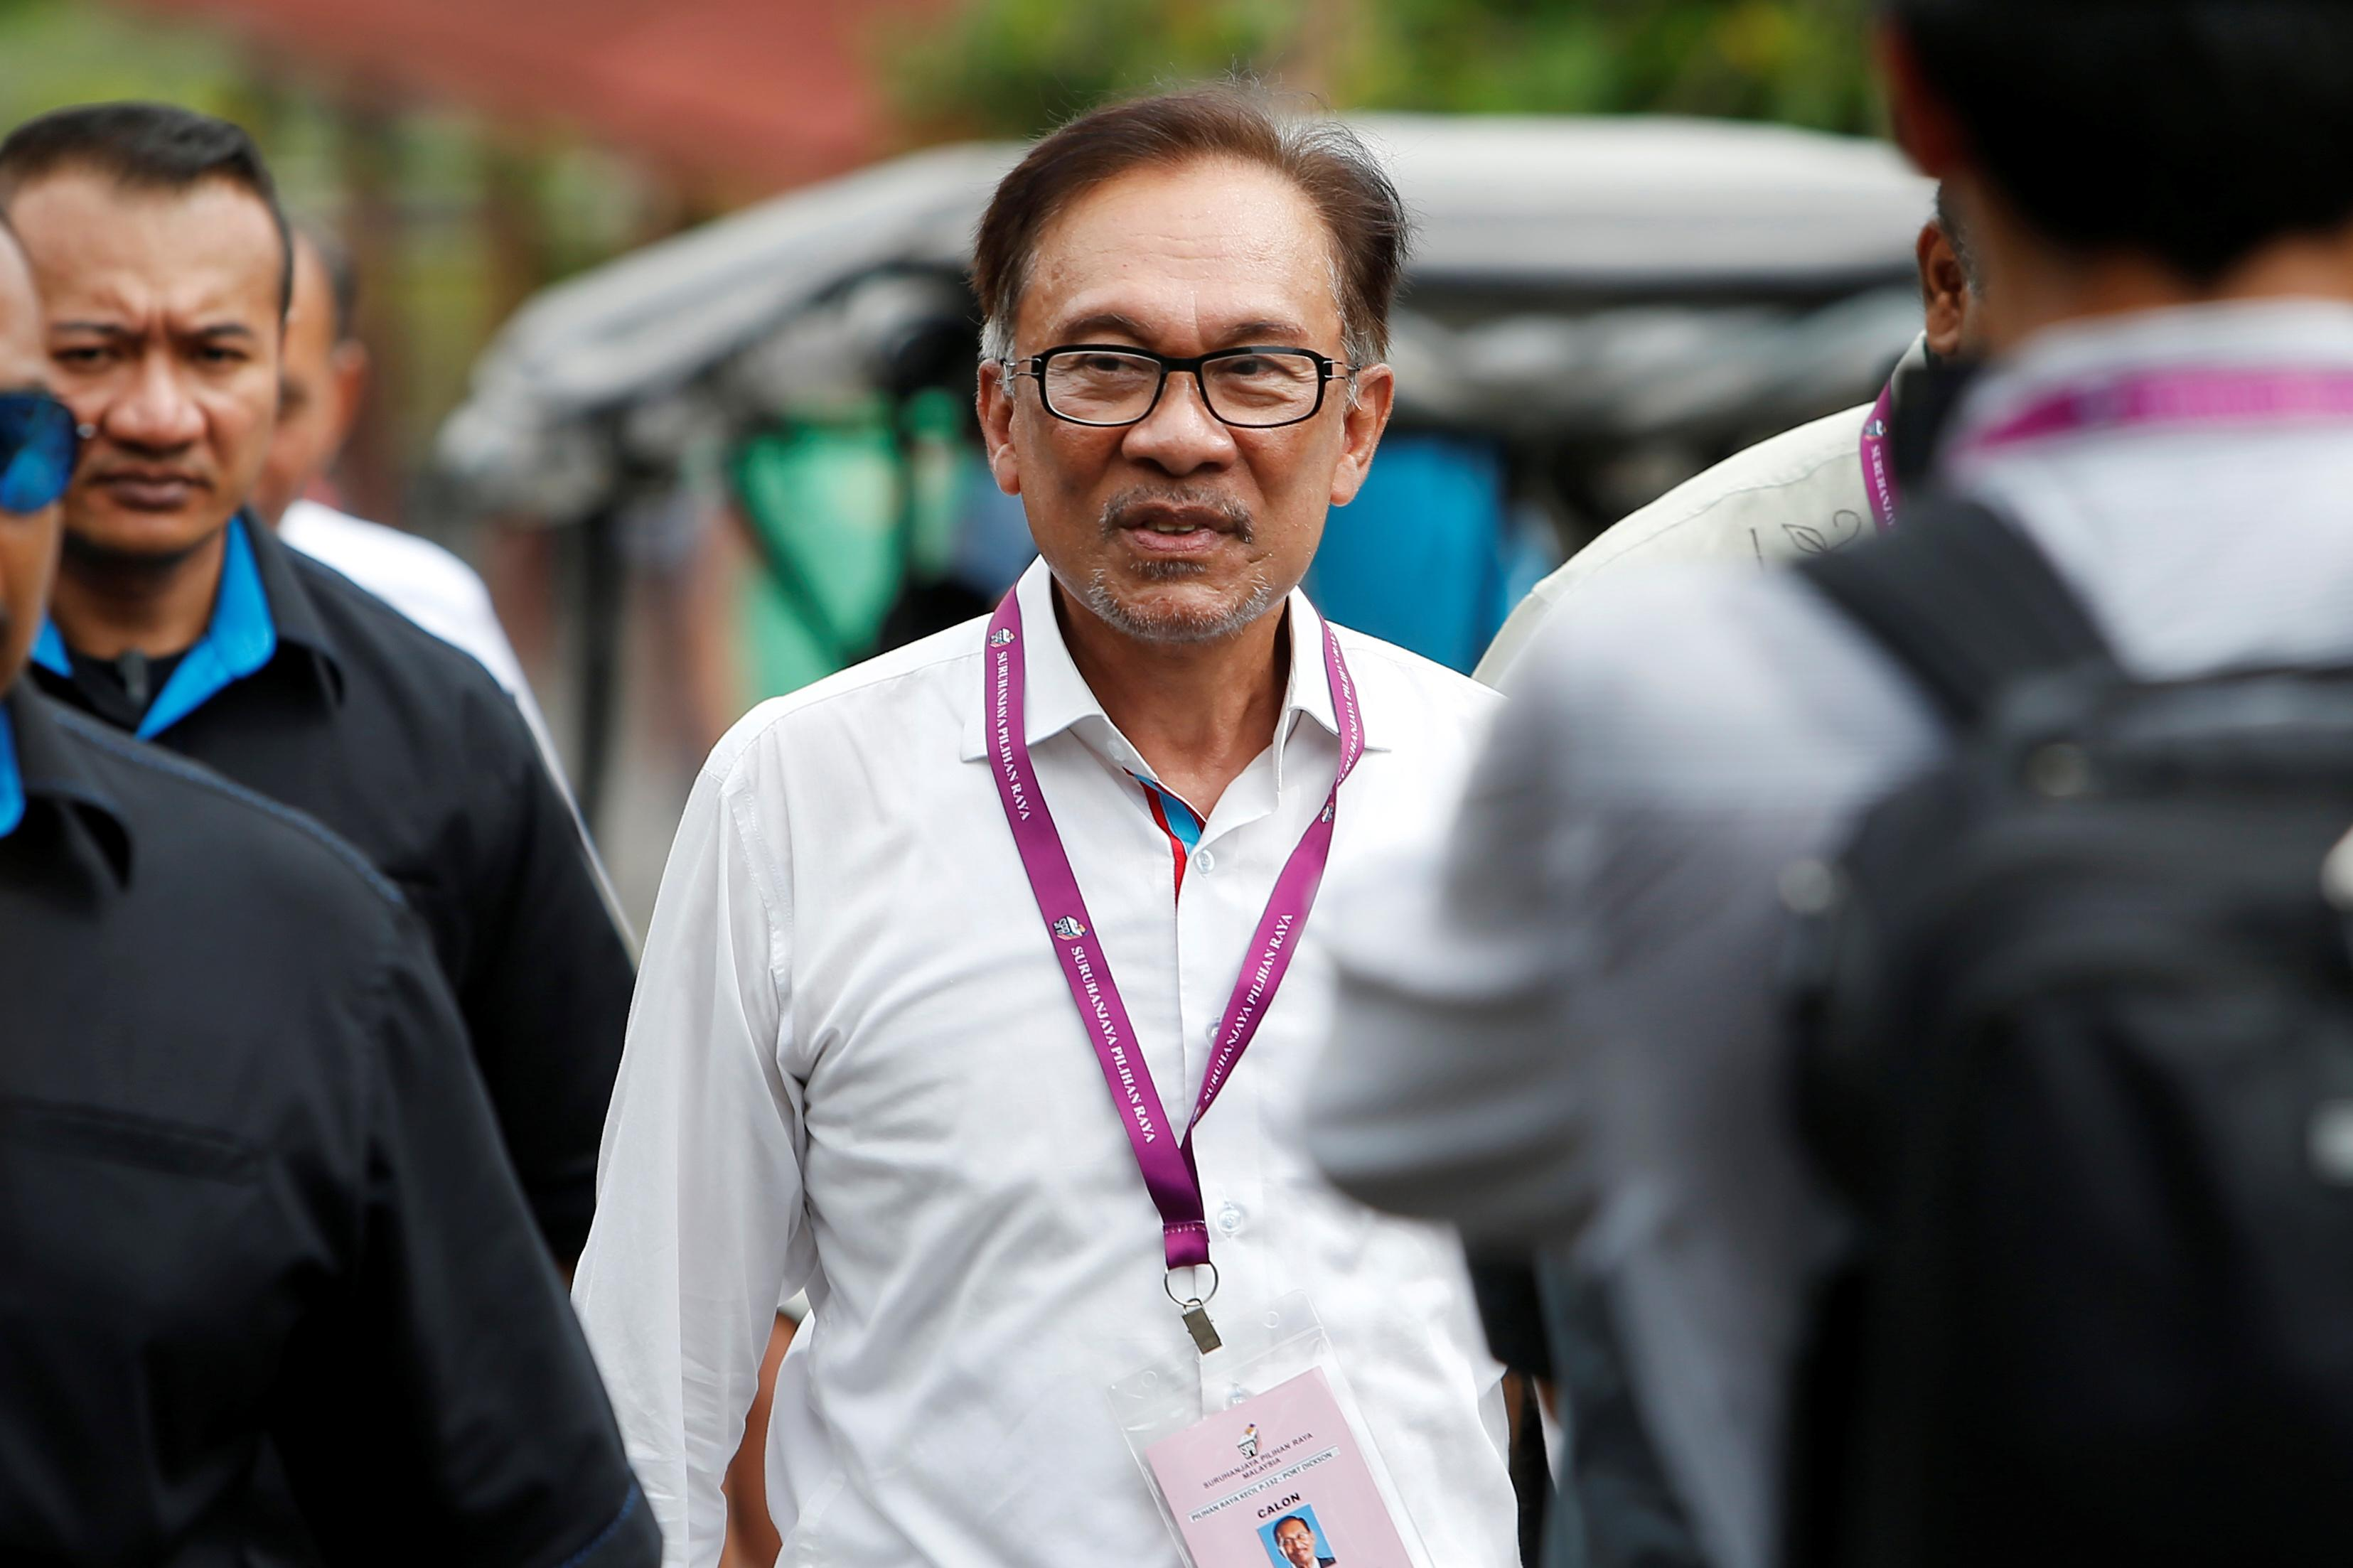 Malaysian police say political leader behind gay sex tape allegations